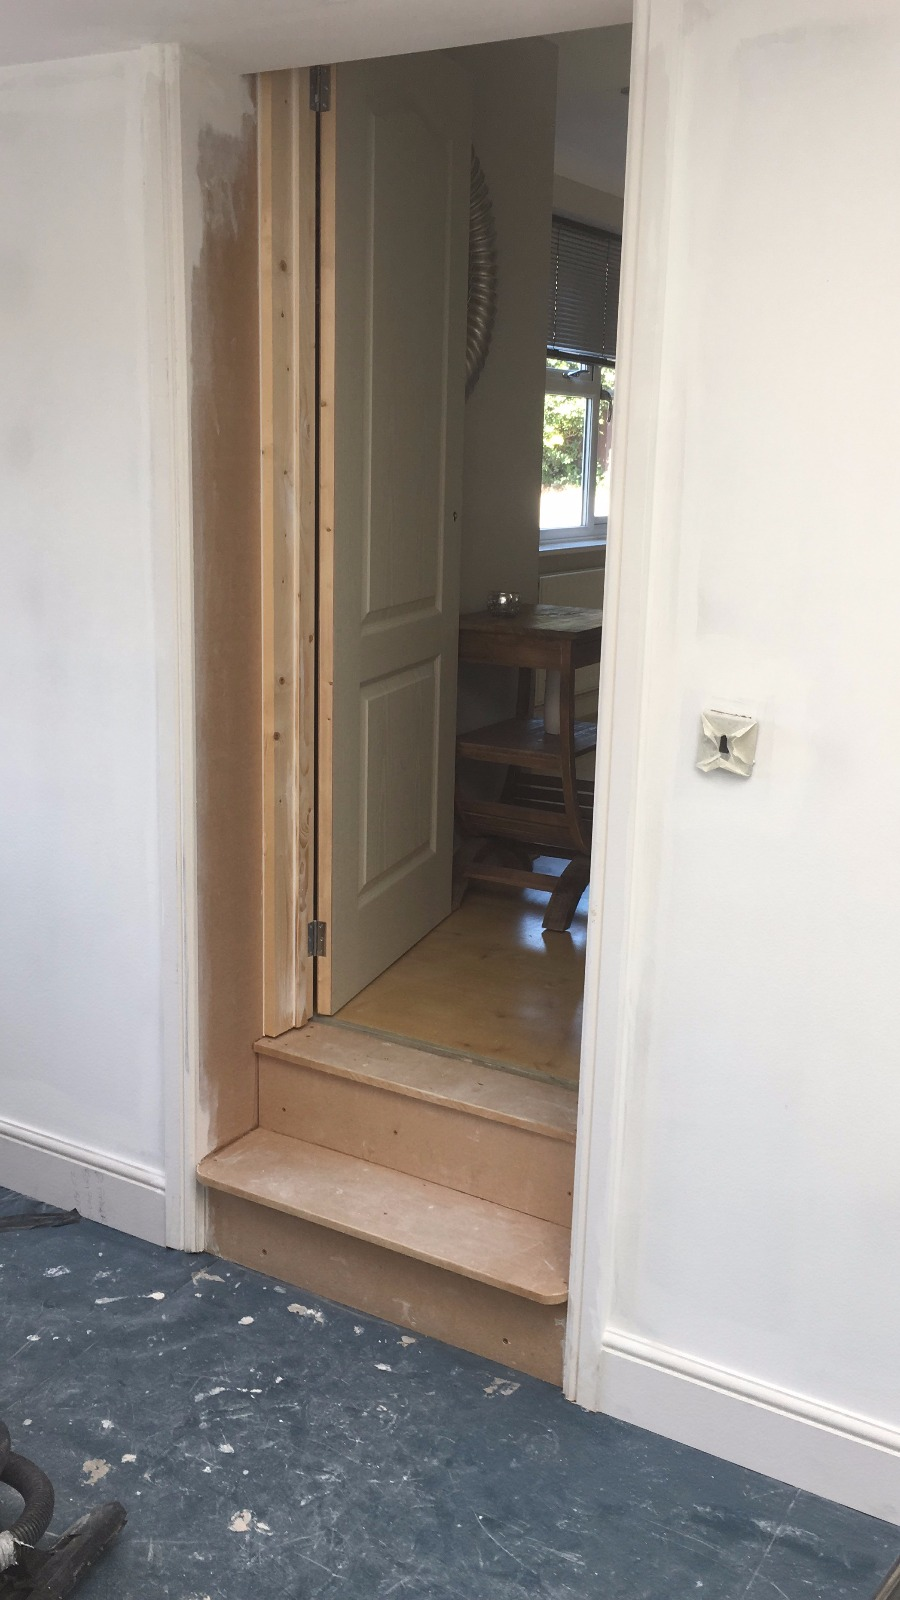 Creation of doorway and step